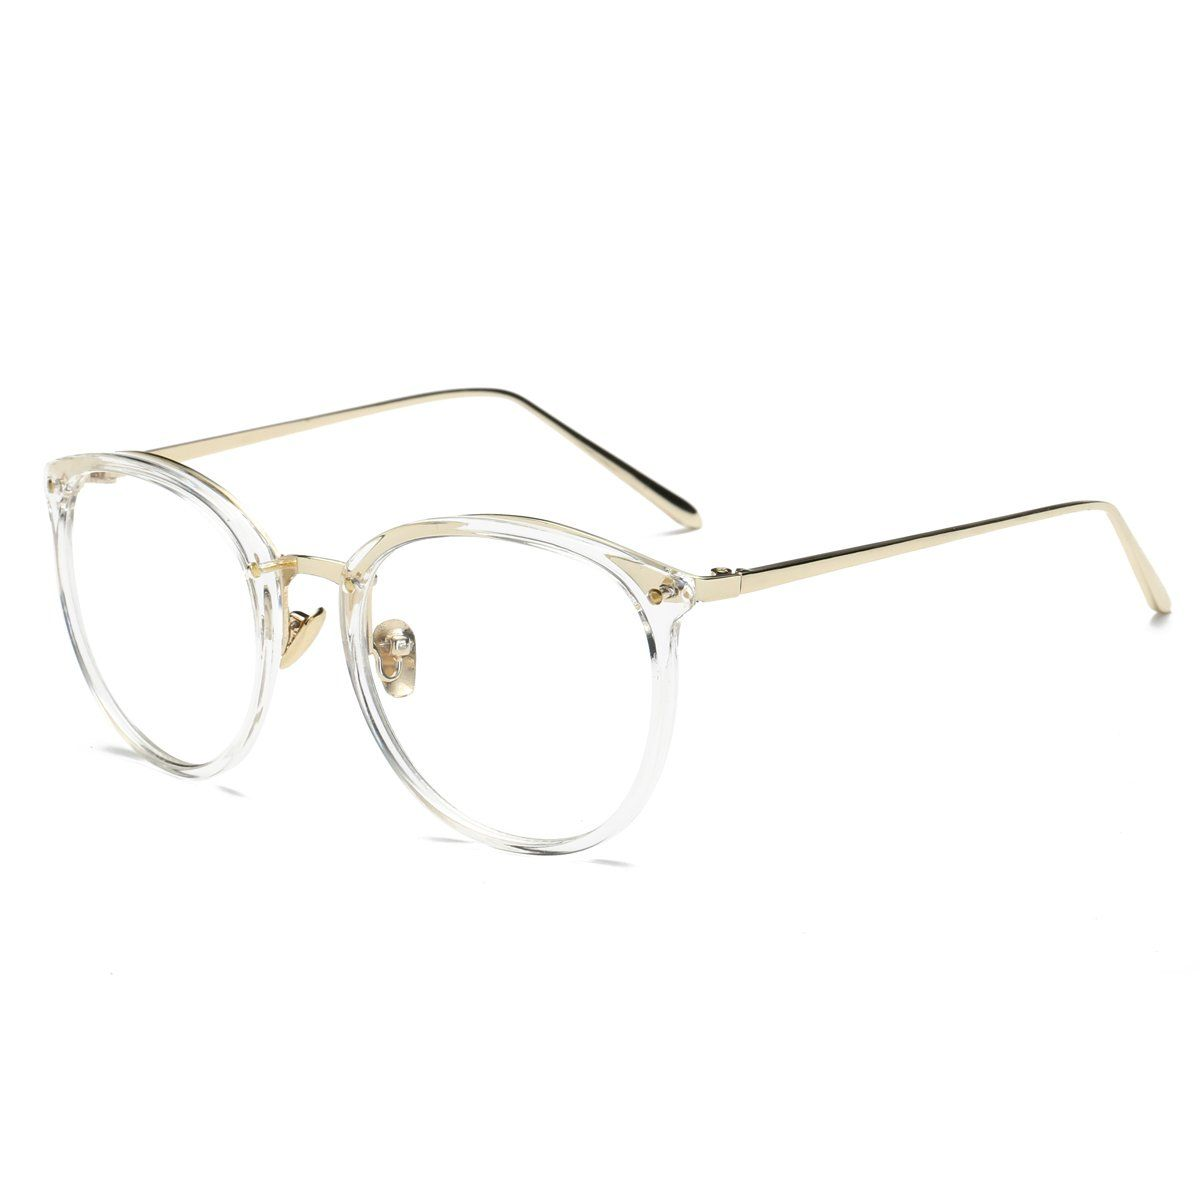 27903d3b387 Amomoma Women's Fashion Round Eyeglasses Optical Frame Clear Lens Eyewear  AM5001 C7 Transparent Gold 50 -- Want to know more